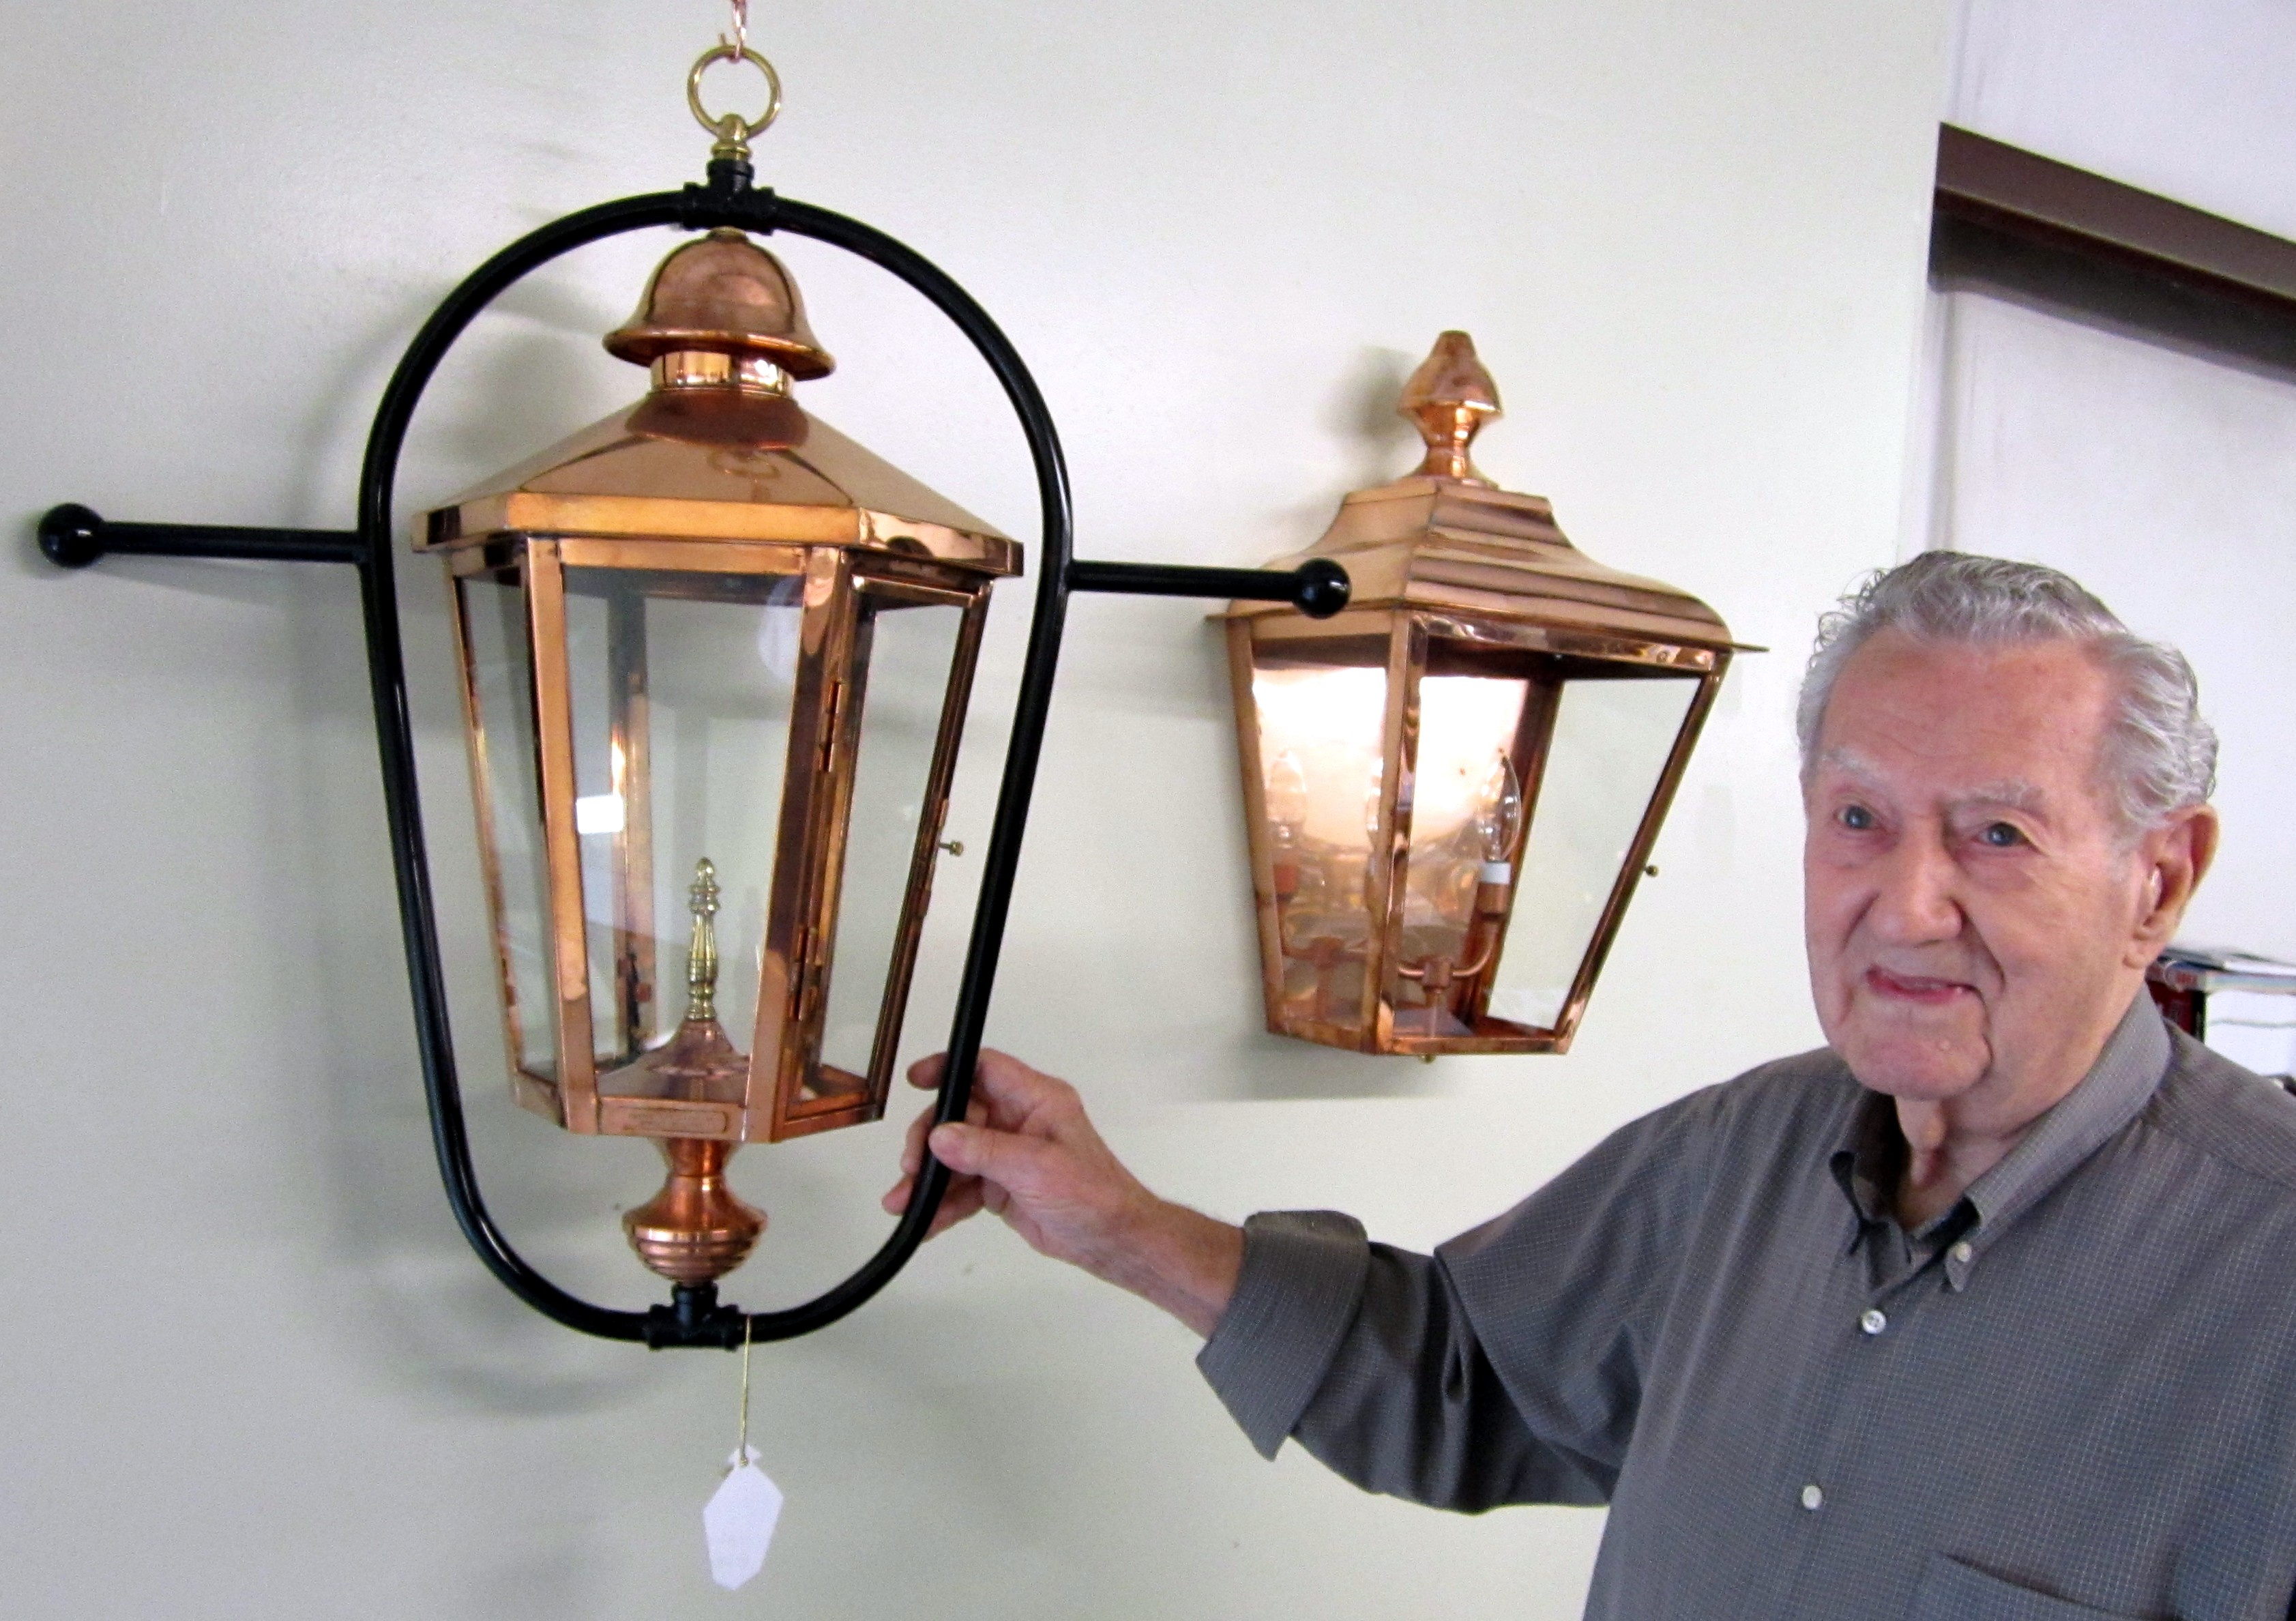 At ...  sc 1 st  William Bruce on Business & 90-Year Old Coppersmith Still Turning Out Lanterns | William Bruce ...